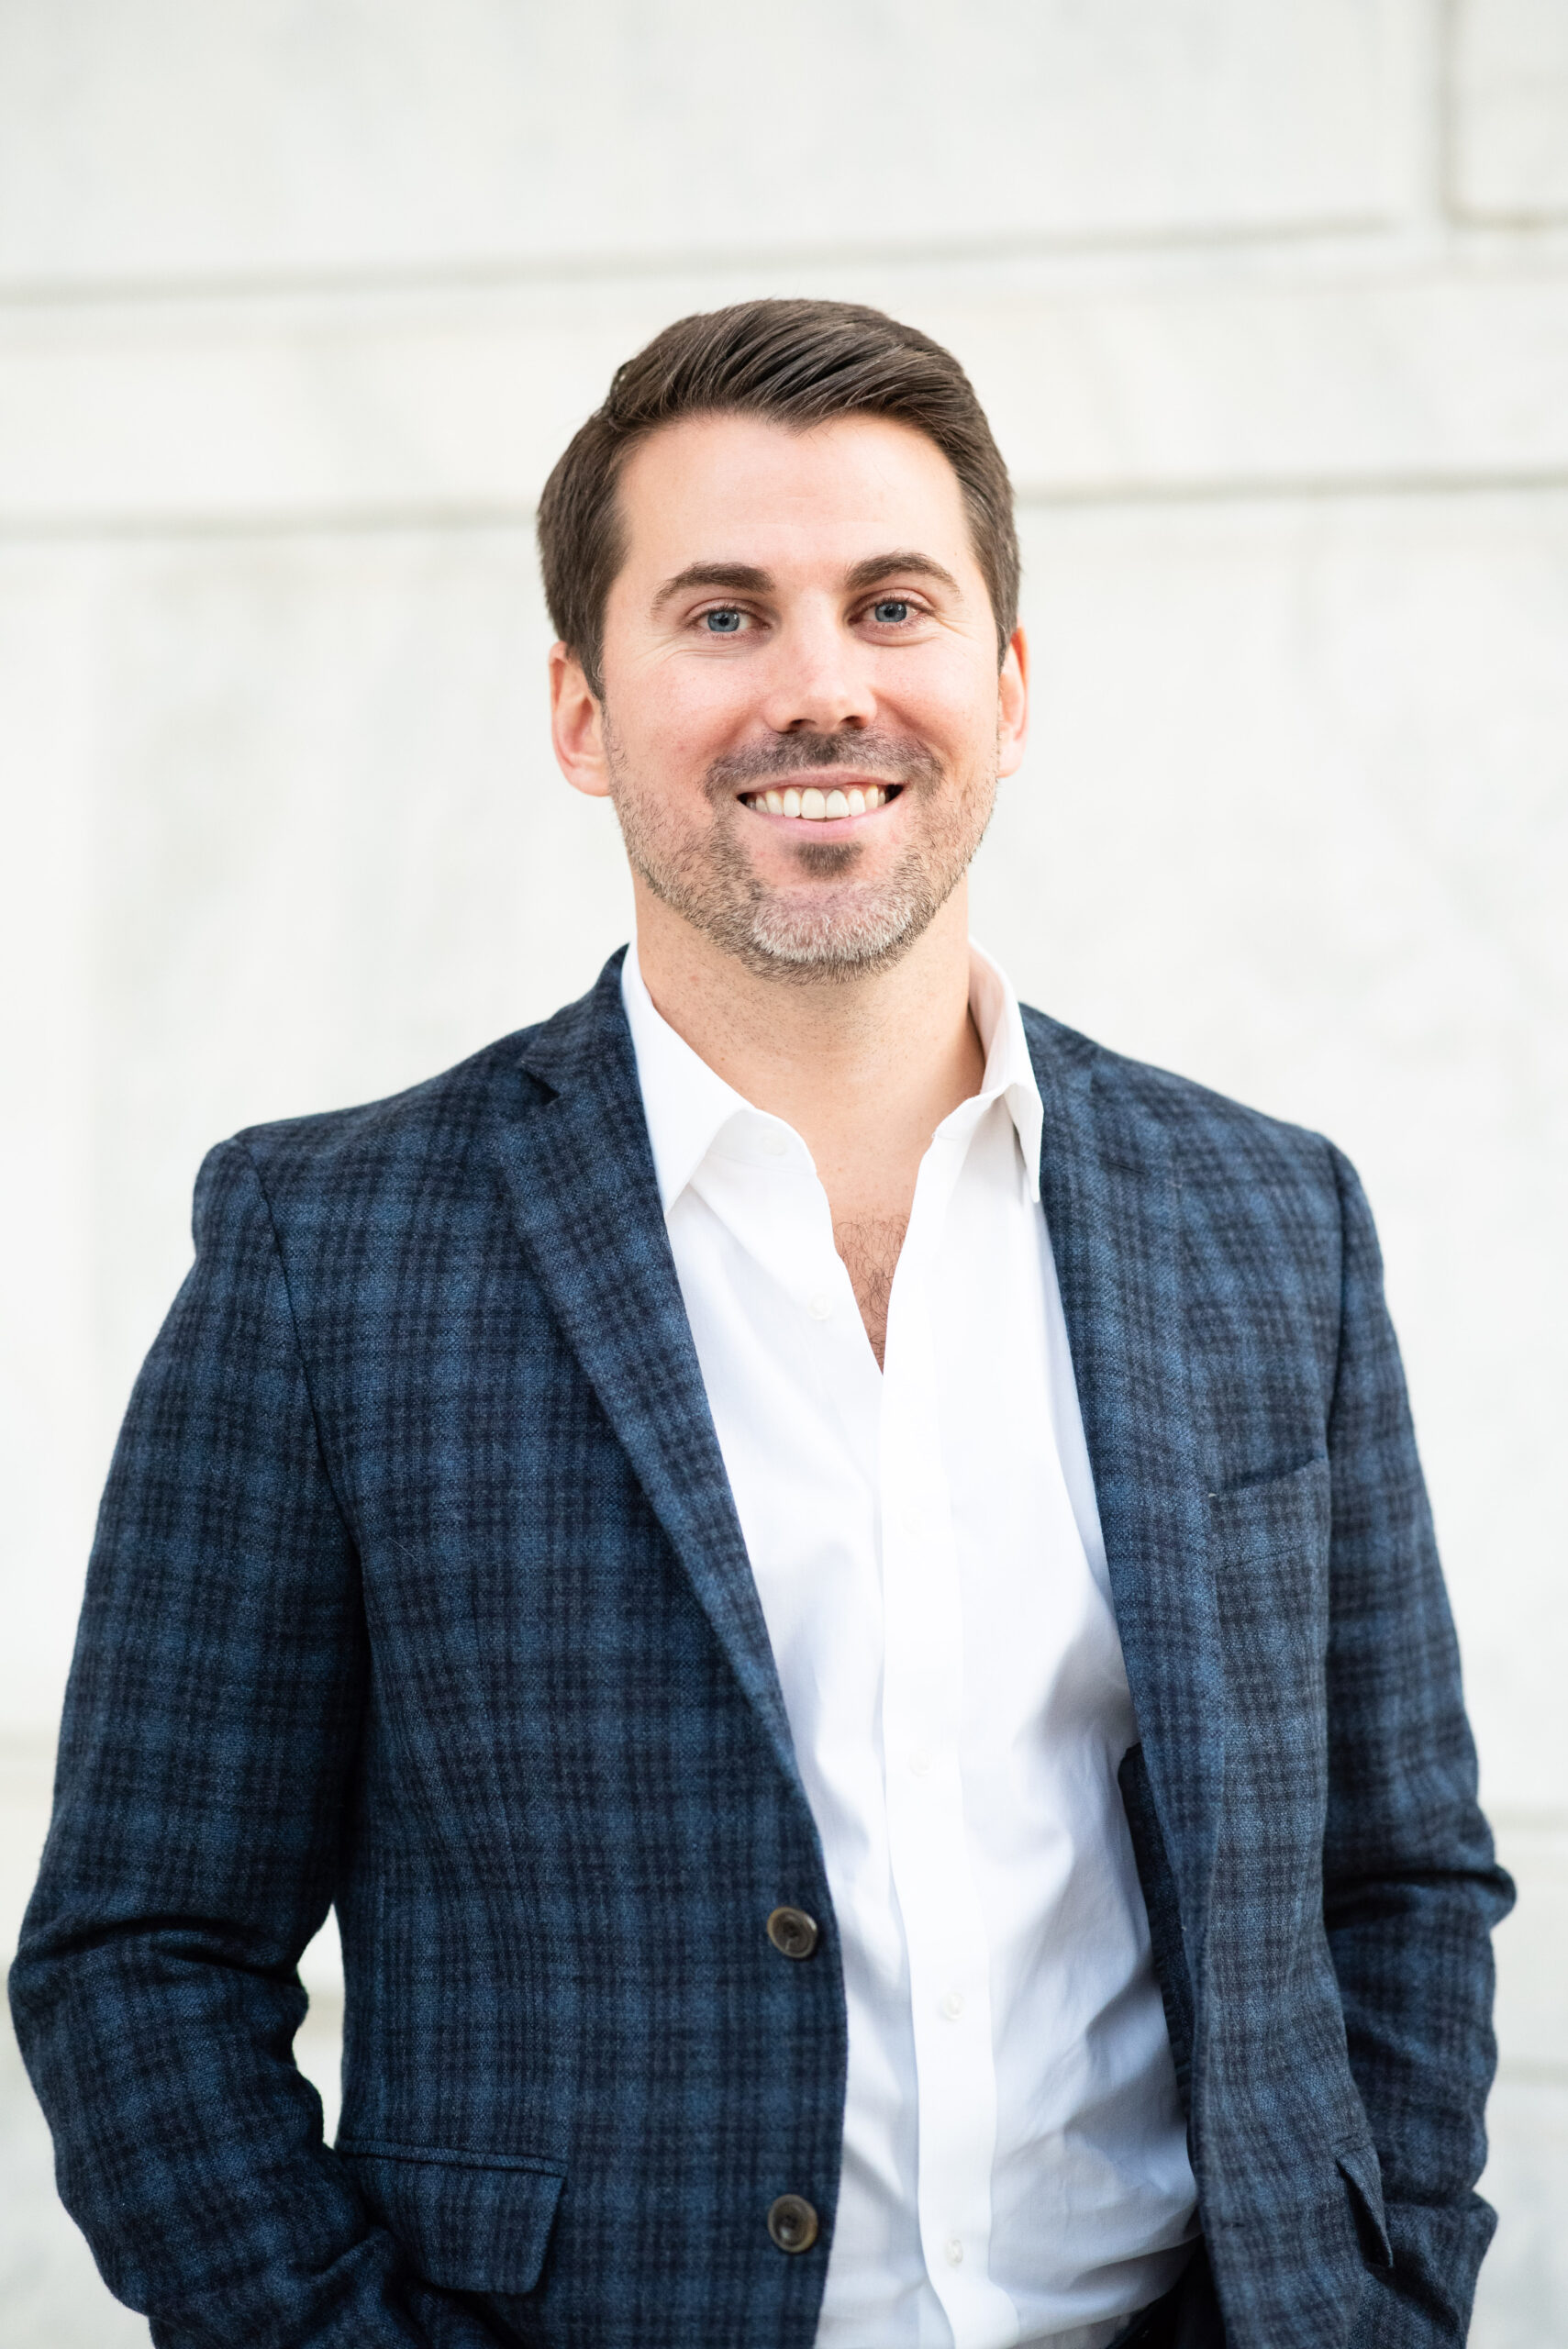 Young Professionals Group of RWJUH Hamilton to Celebrate Brian Hartmann at Virtual All In Good Taste Event